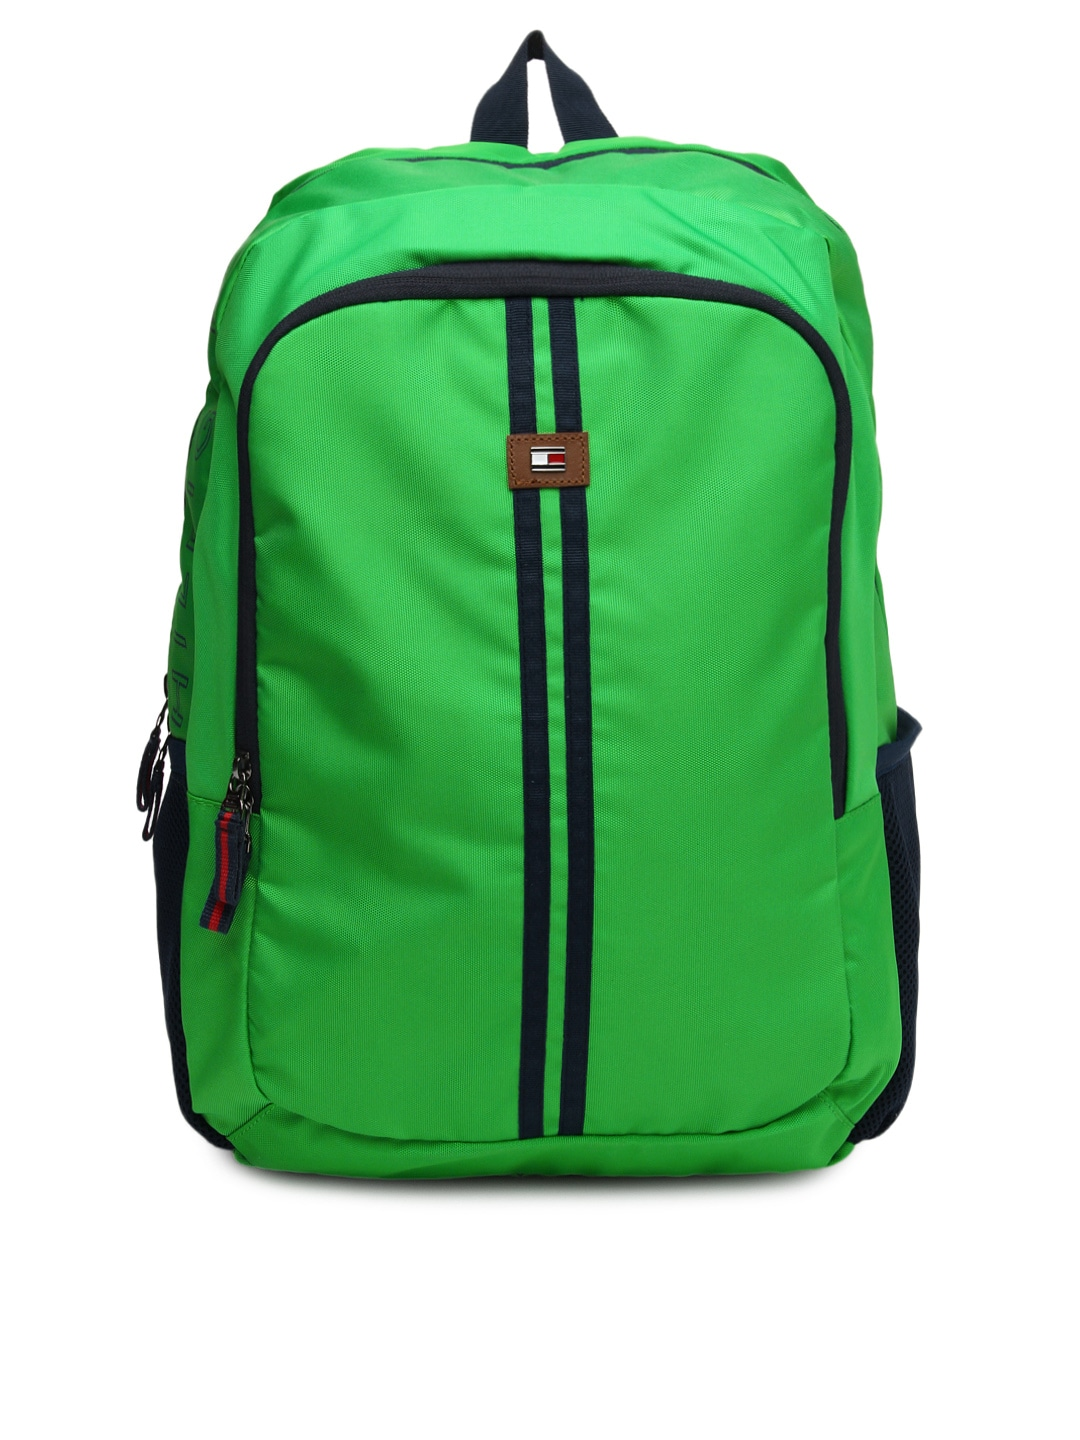 Tommy Hilfiger Unisex Green & Navy Backpack